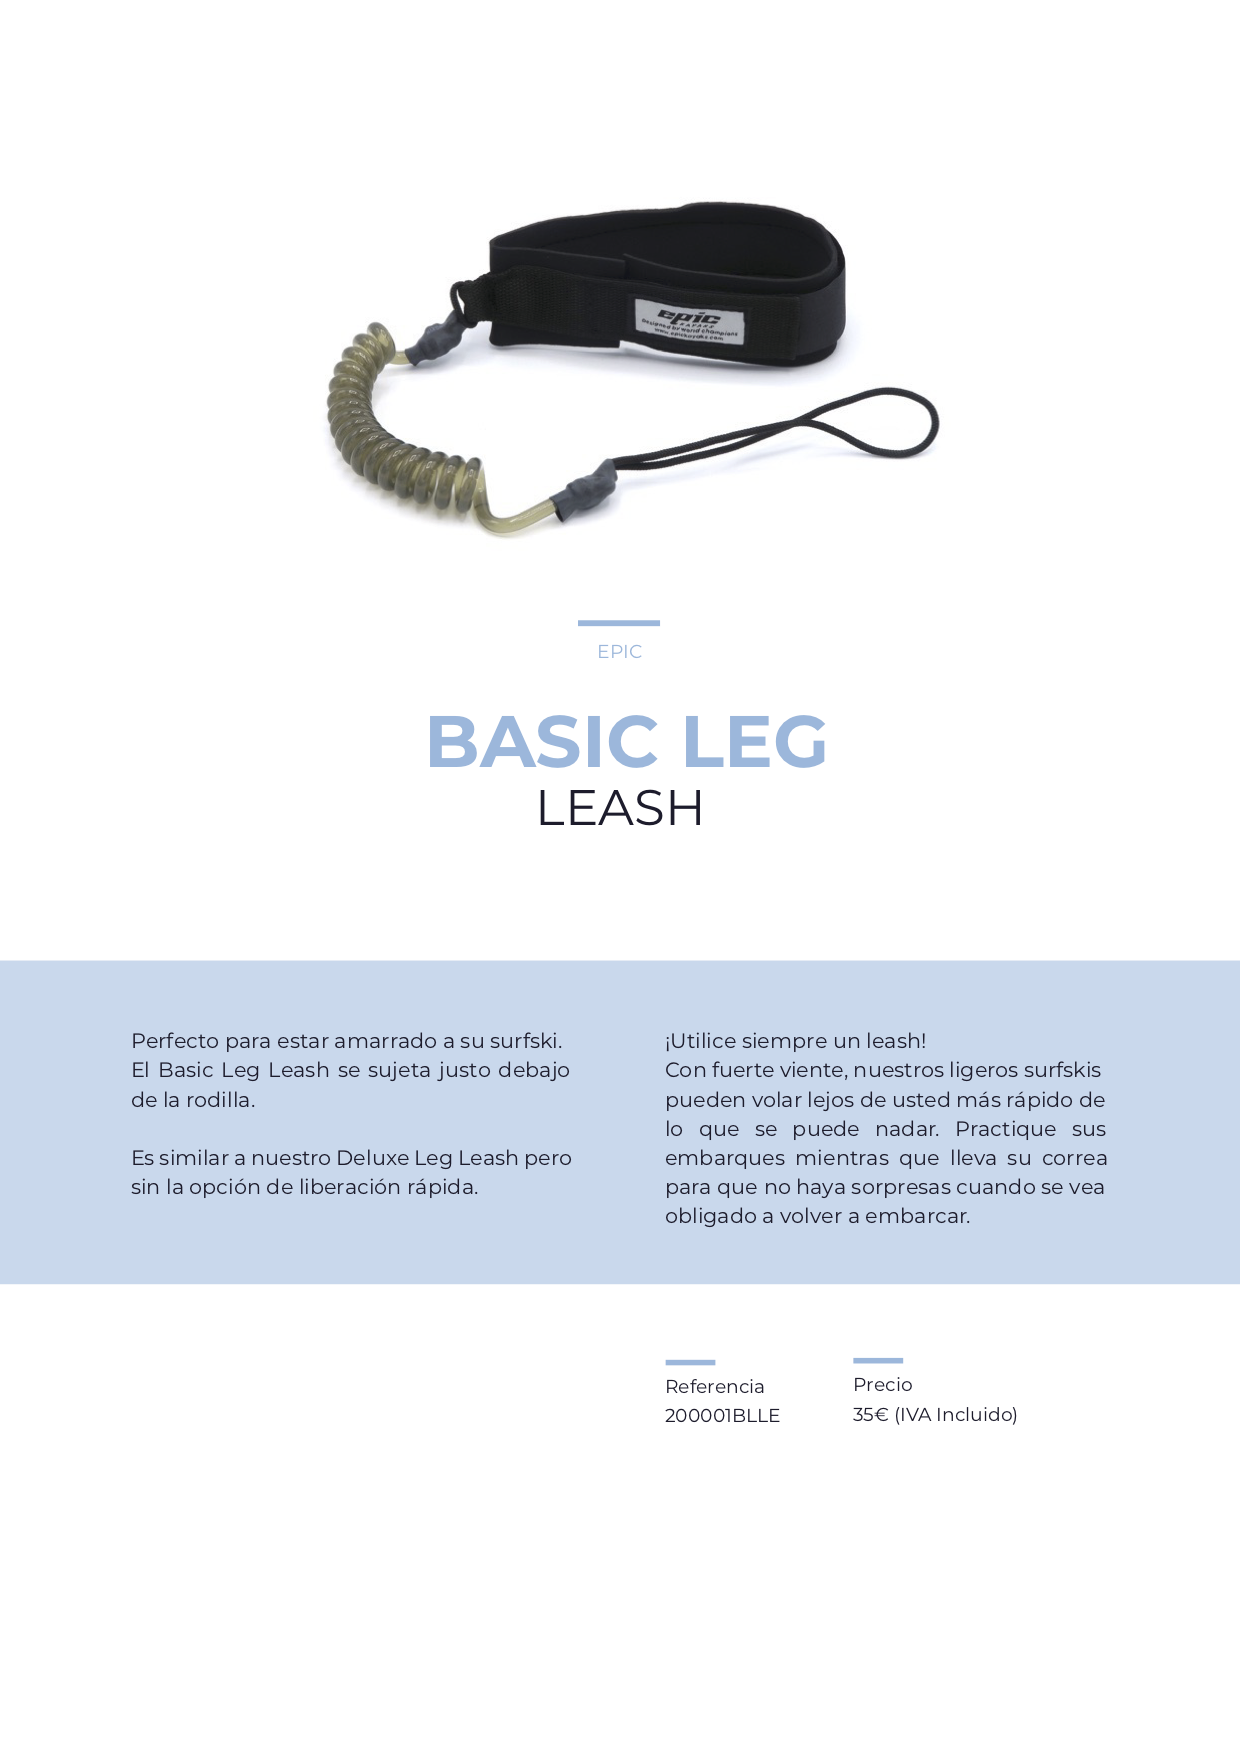 leash basic epic